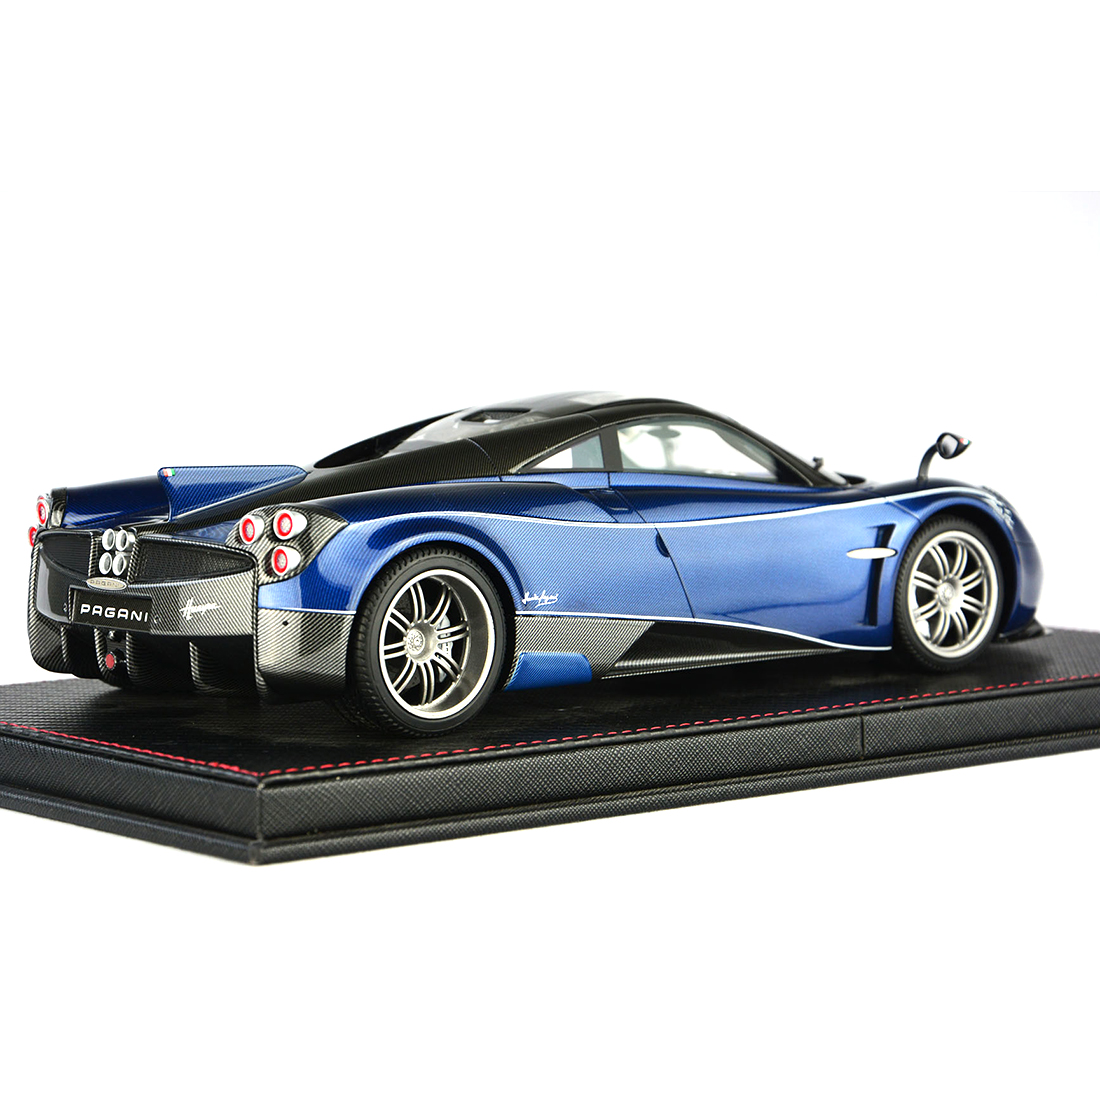 1:18 Car Model Pagani HUAYRA Model Collection Decor With Base Dust Cover Model Educational Toy Blue/Charcoal Grey/Purple Red - 3